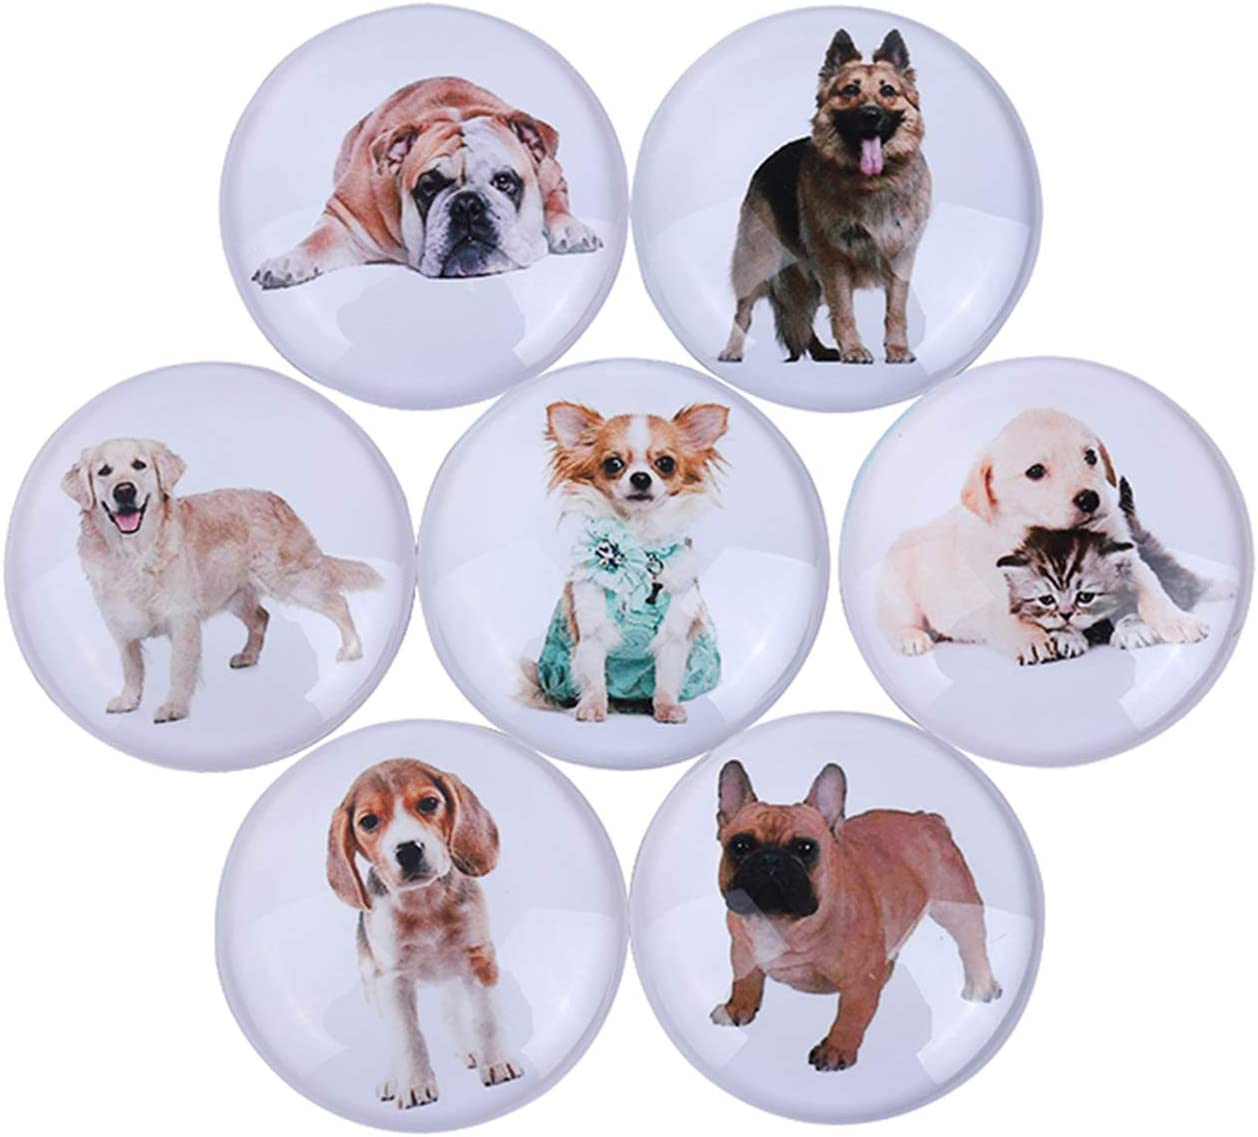 Fridge Magnets Dog Refrigerator Magnets Round Color Decorative Magnets Kitchen Magnets Christmas Decoration Magnets DIY